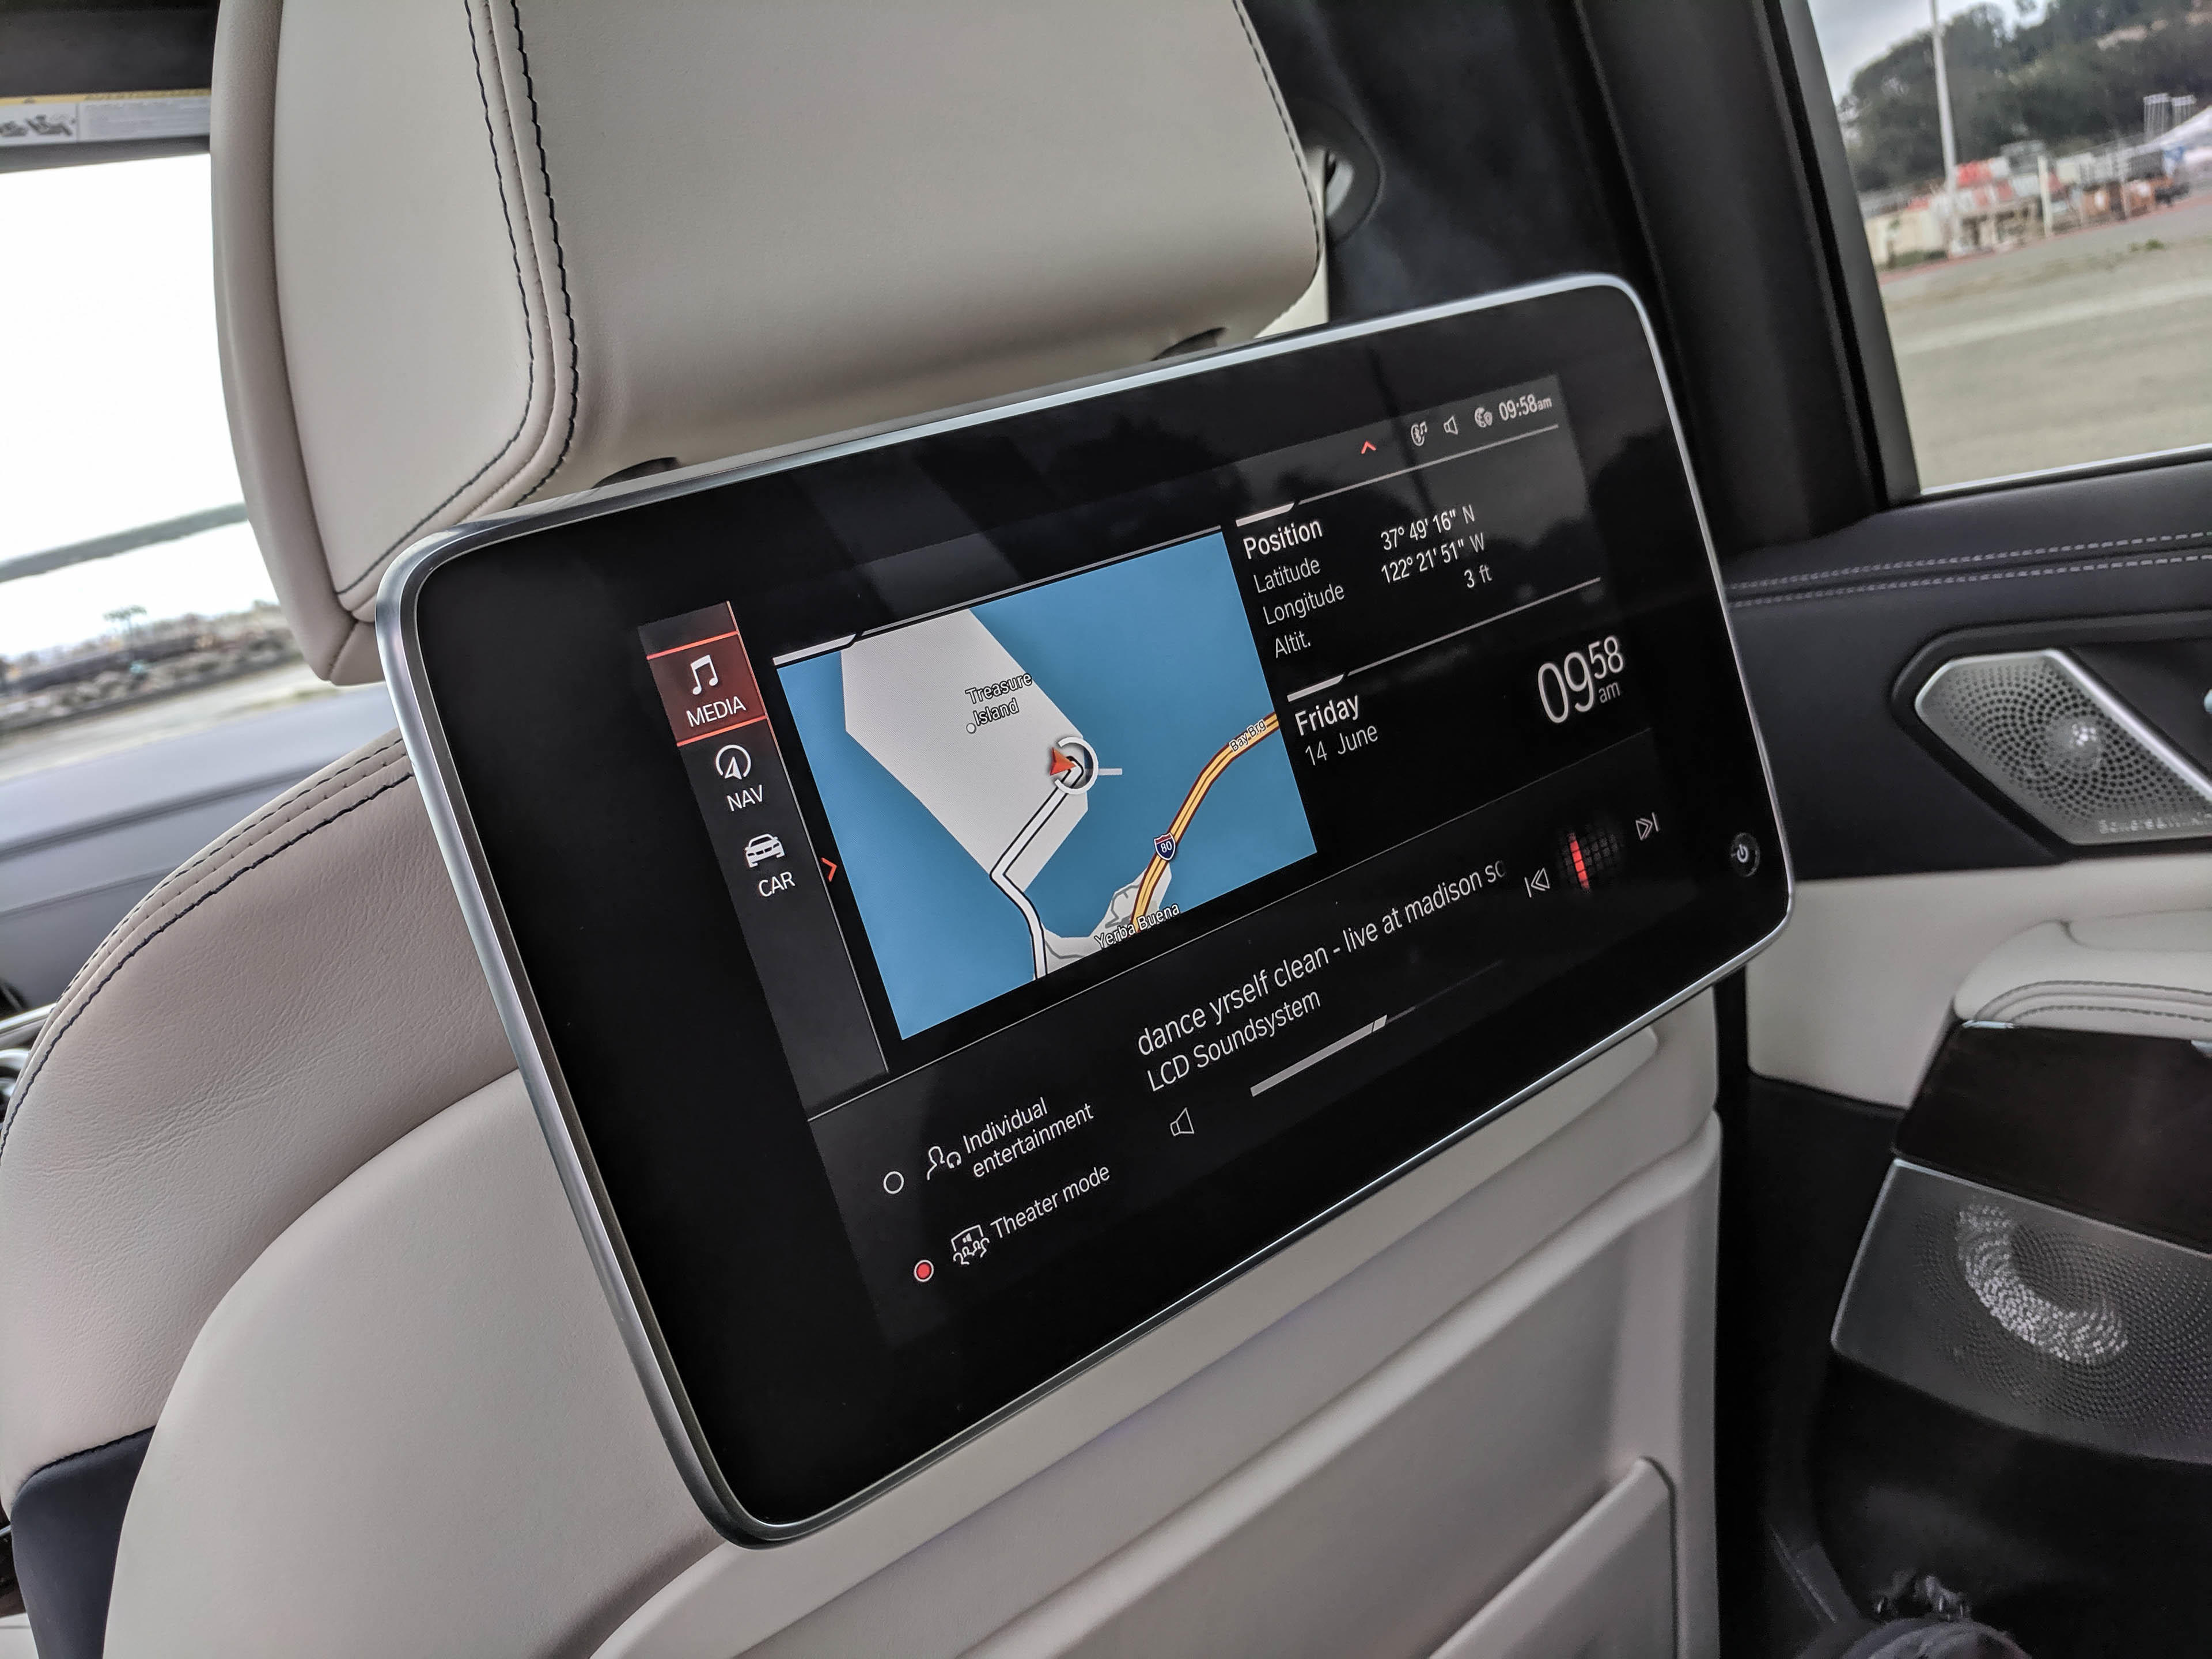 Amazon Fire TV integration in cars